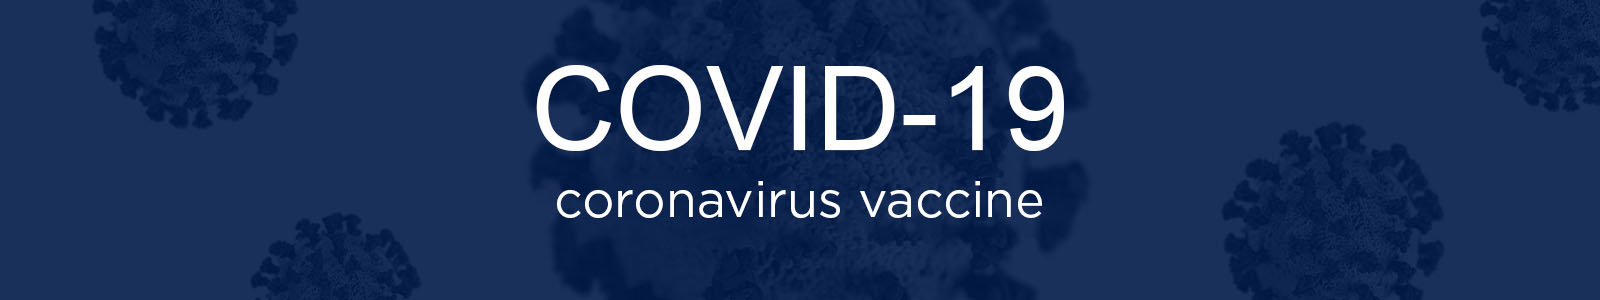 """The image reads """"COVID-19 coronavirus vaccine."""" This image is the website banner of the LFUCG vaccine webpage."""